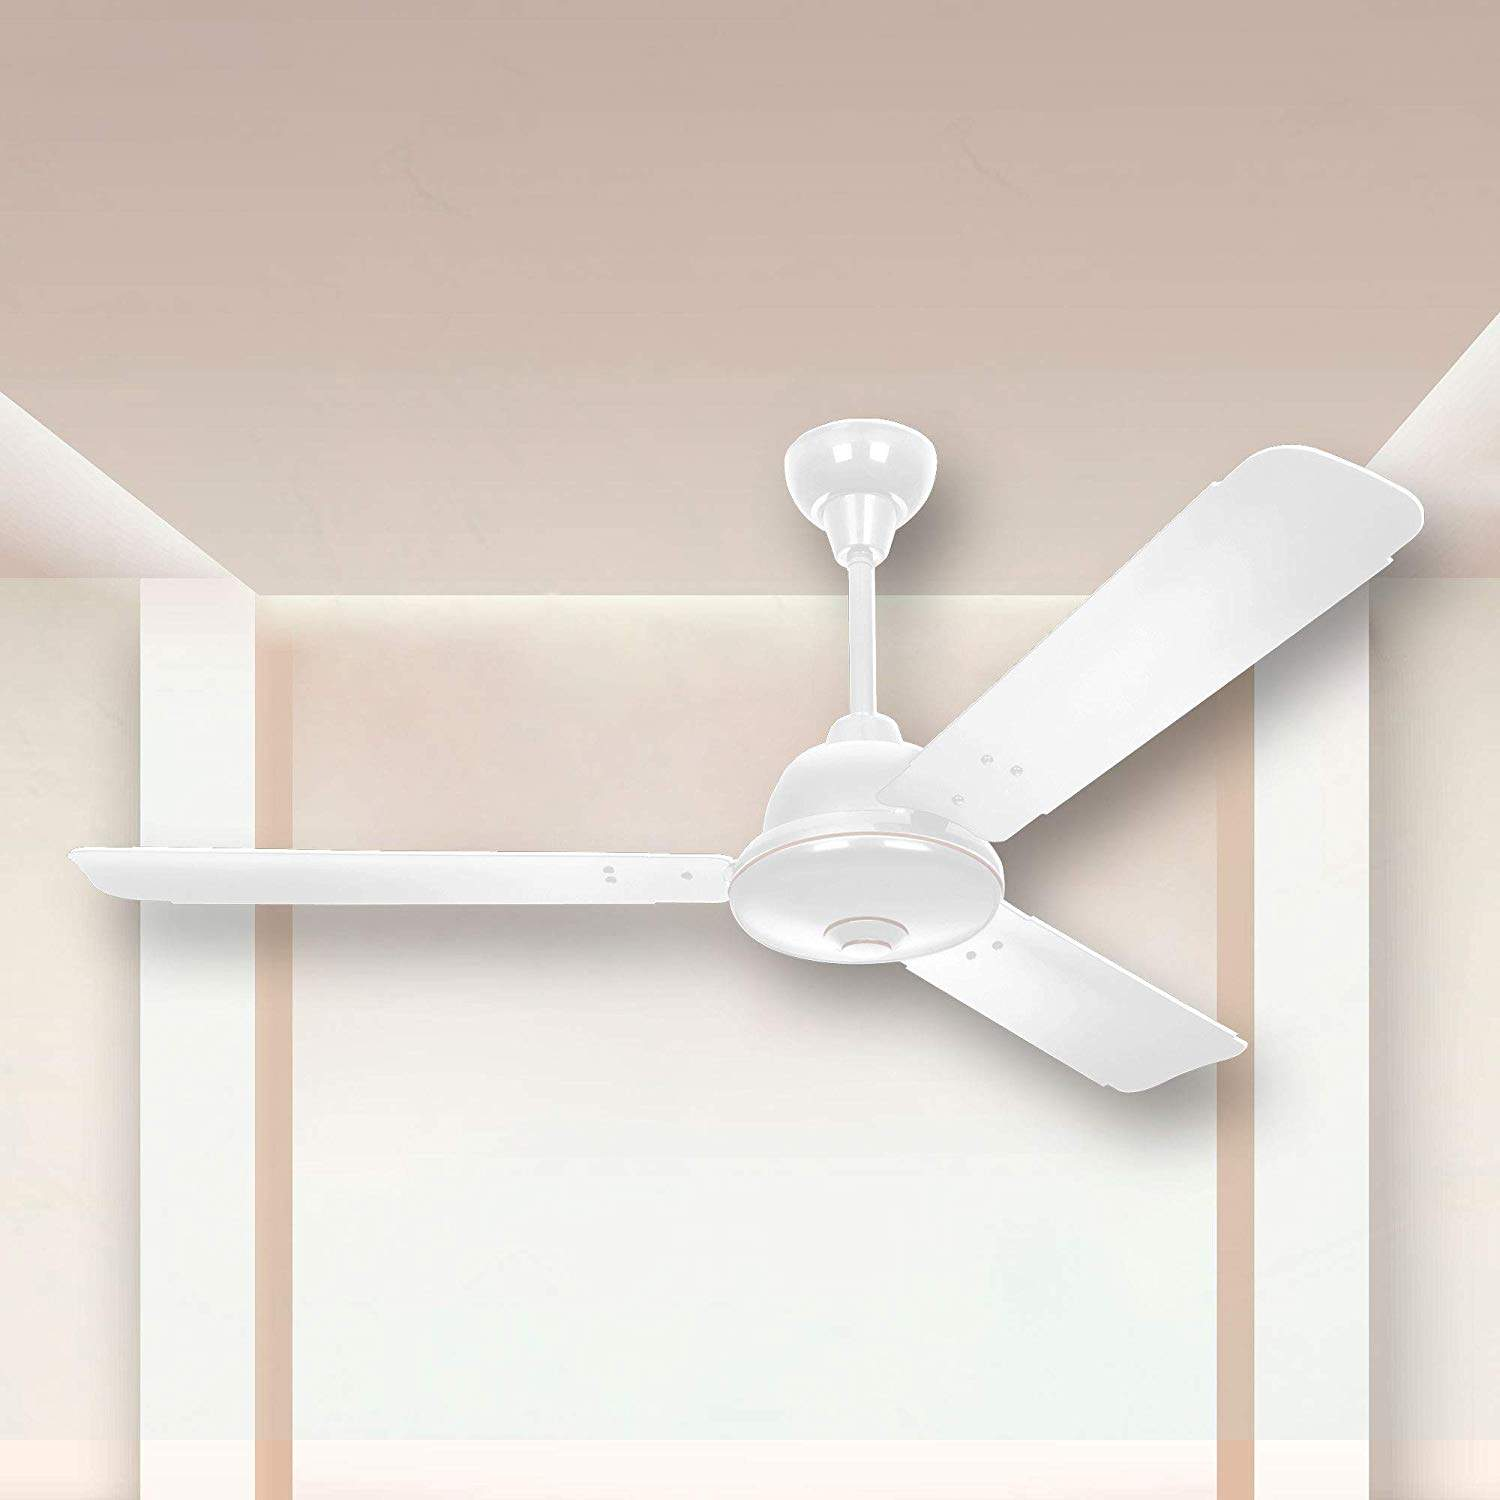 Image of: Buy Syska Primo Energy 1200mm Ceiling Fan White Features Price Reviews Online In India Justdial